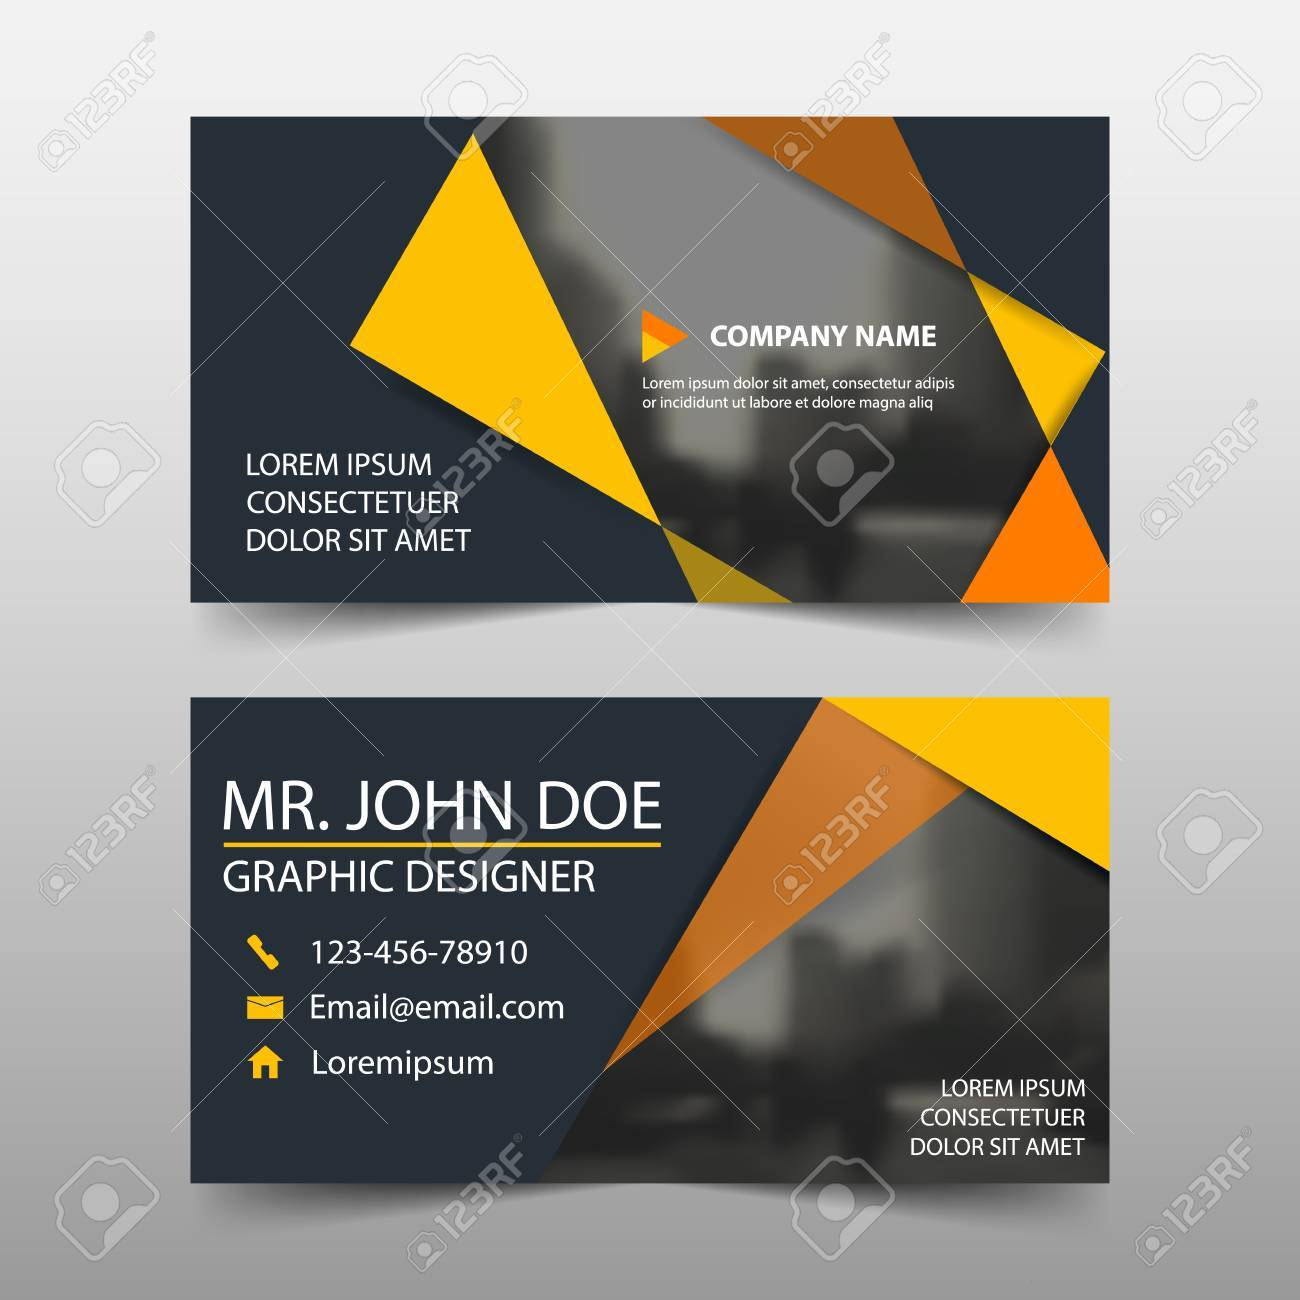 Mlm Business Cards Gallery - Free Business Cards